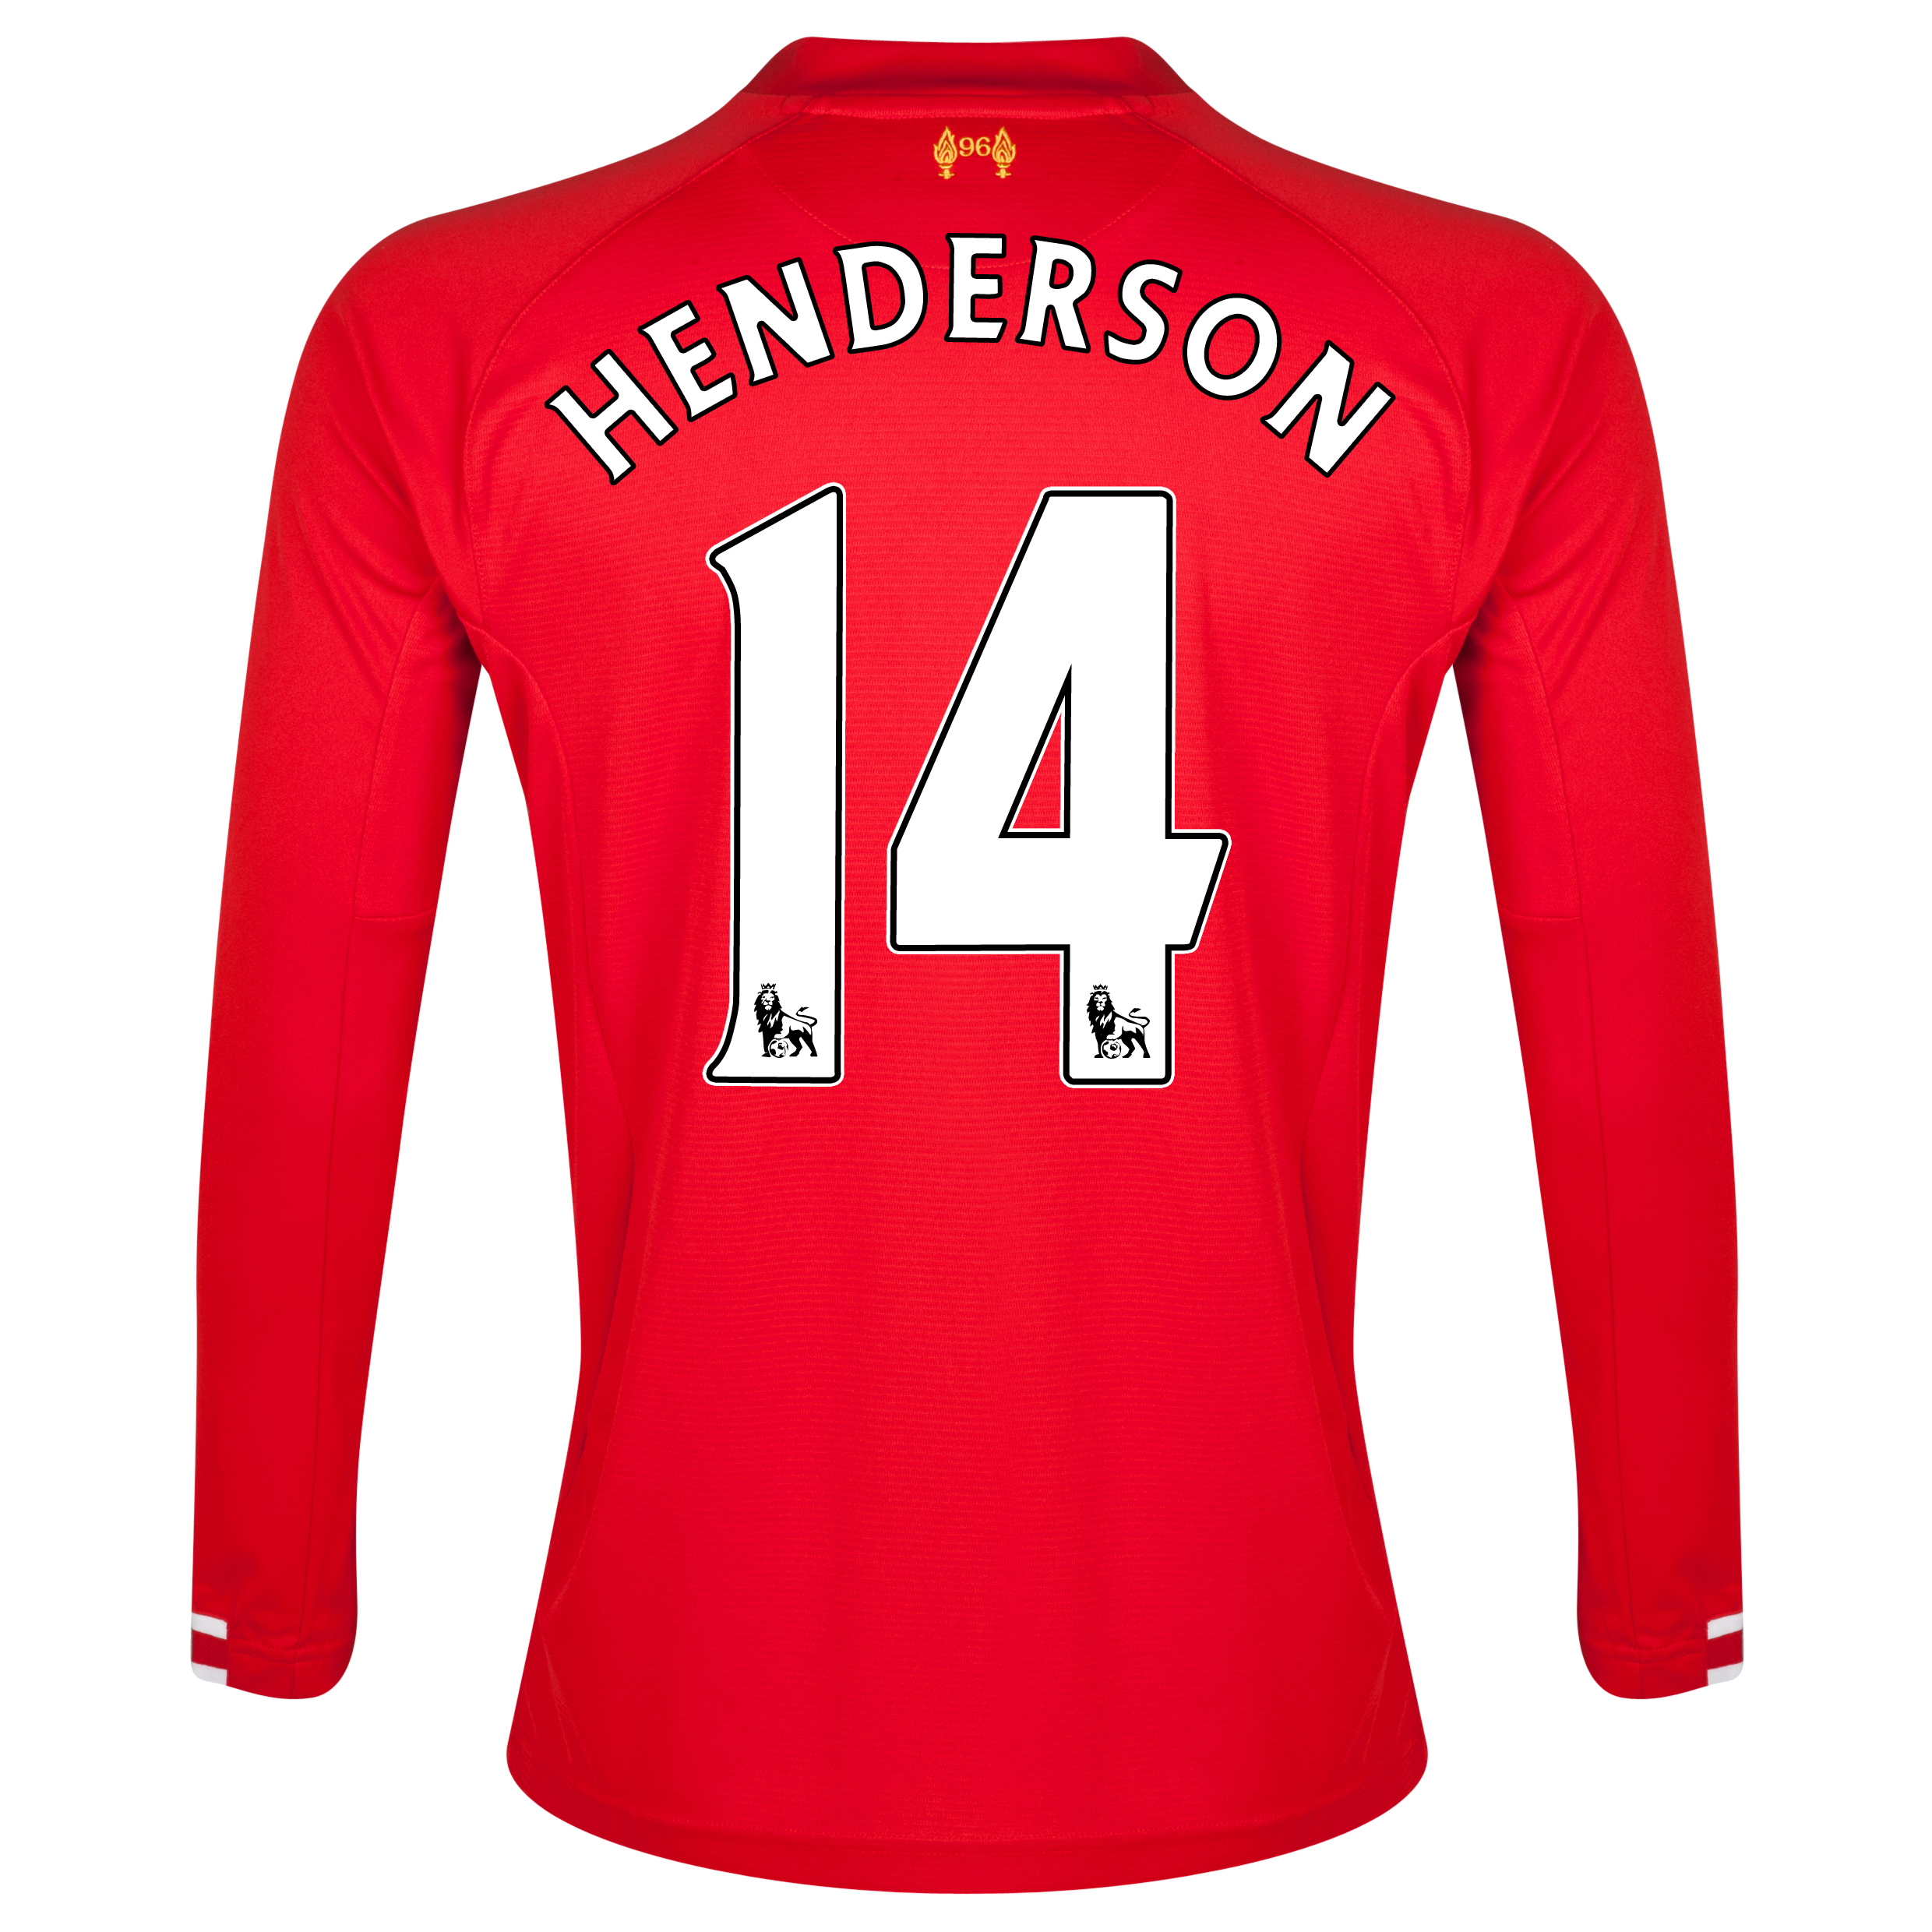 Liverpool Home Shirt 2013/14 - Long Sleeve - Kids with Henderson 14 printing